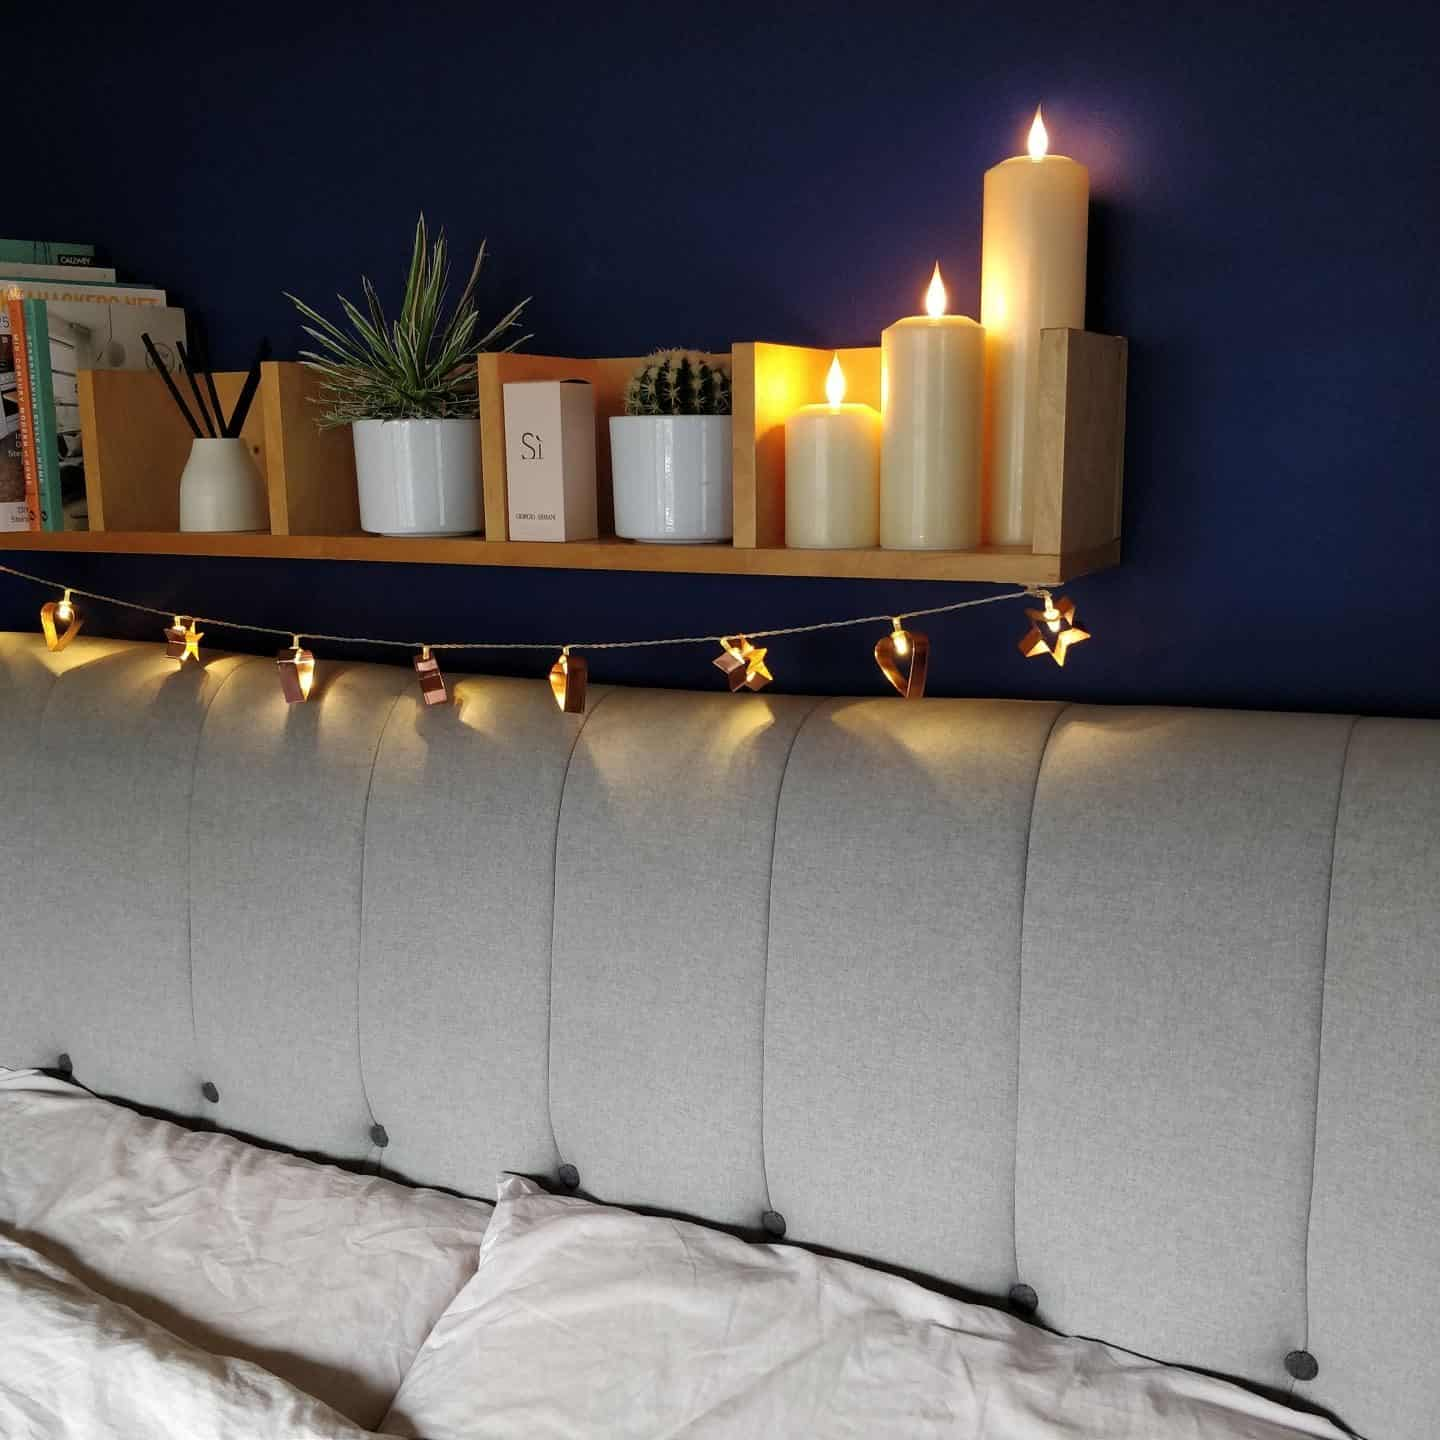 Realistic LED candles from Candled on a bedroom shelf 4